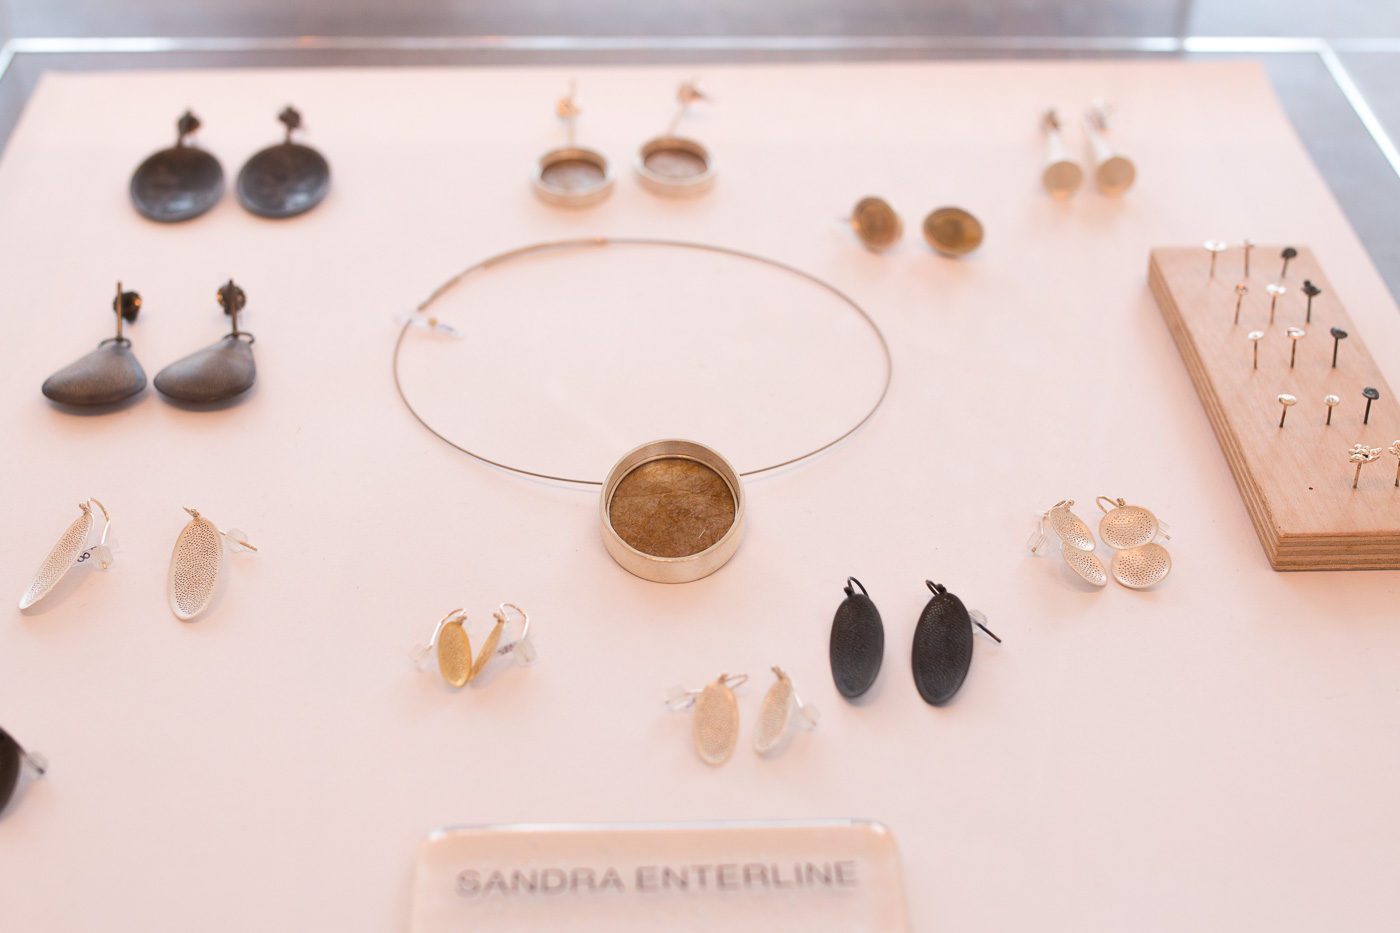 Sandra Enterline Jewelry